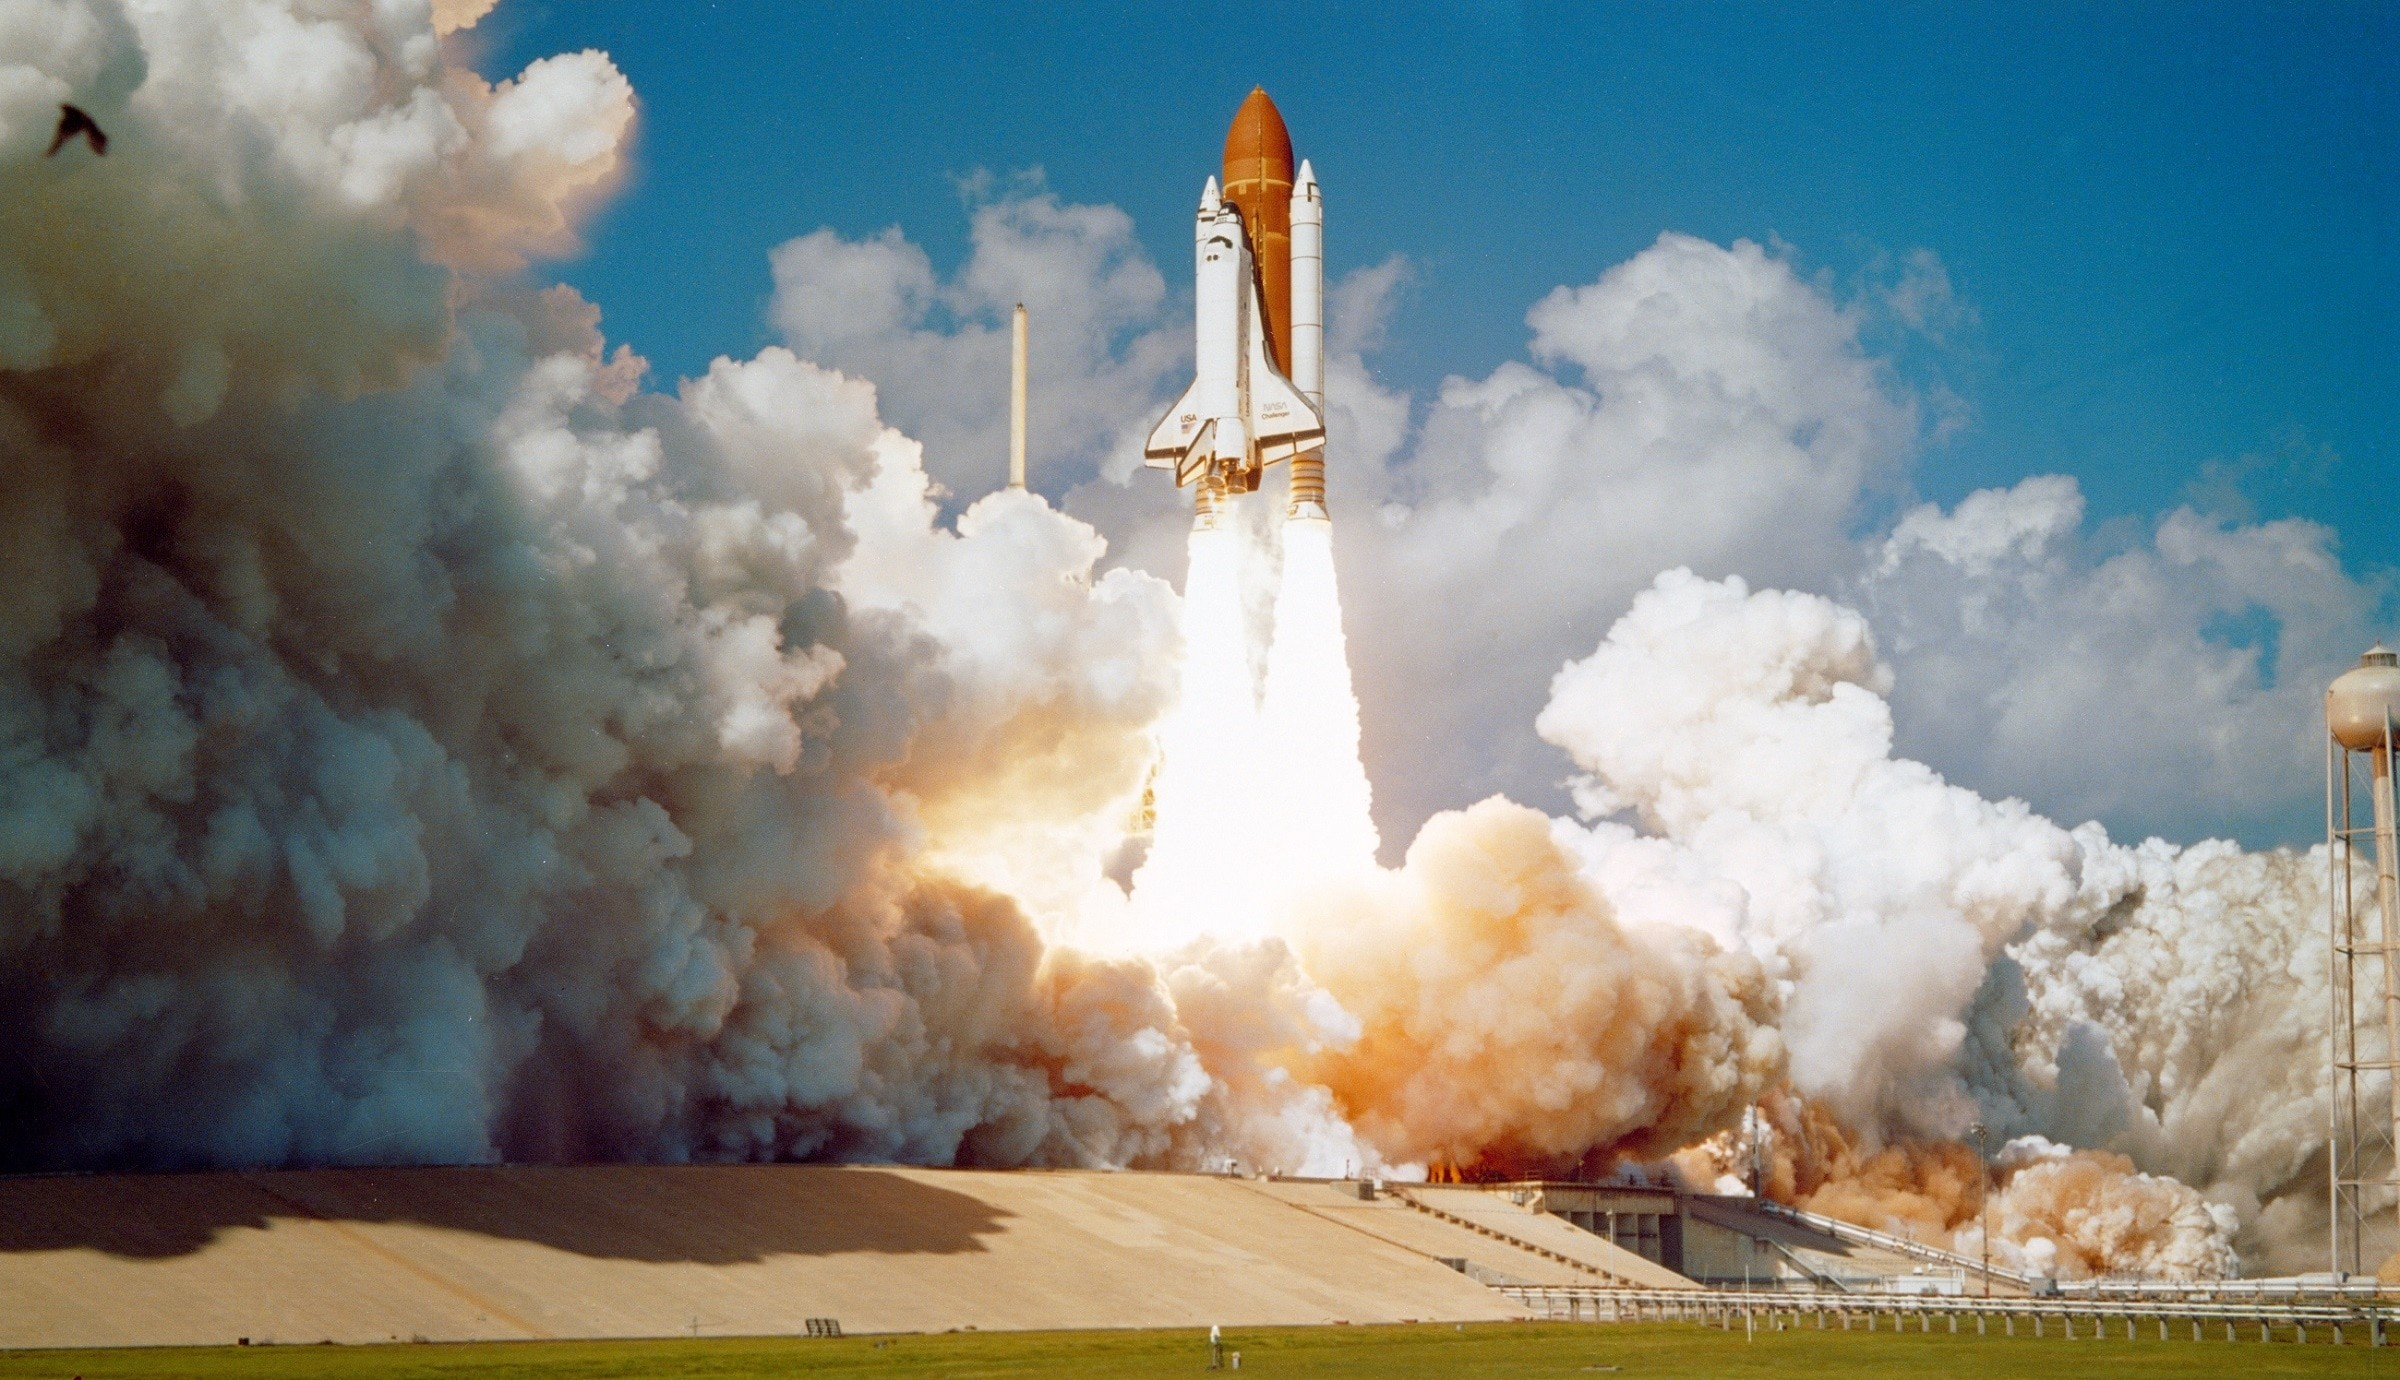 Space Shuttle Launch Wallpaper 1